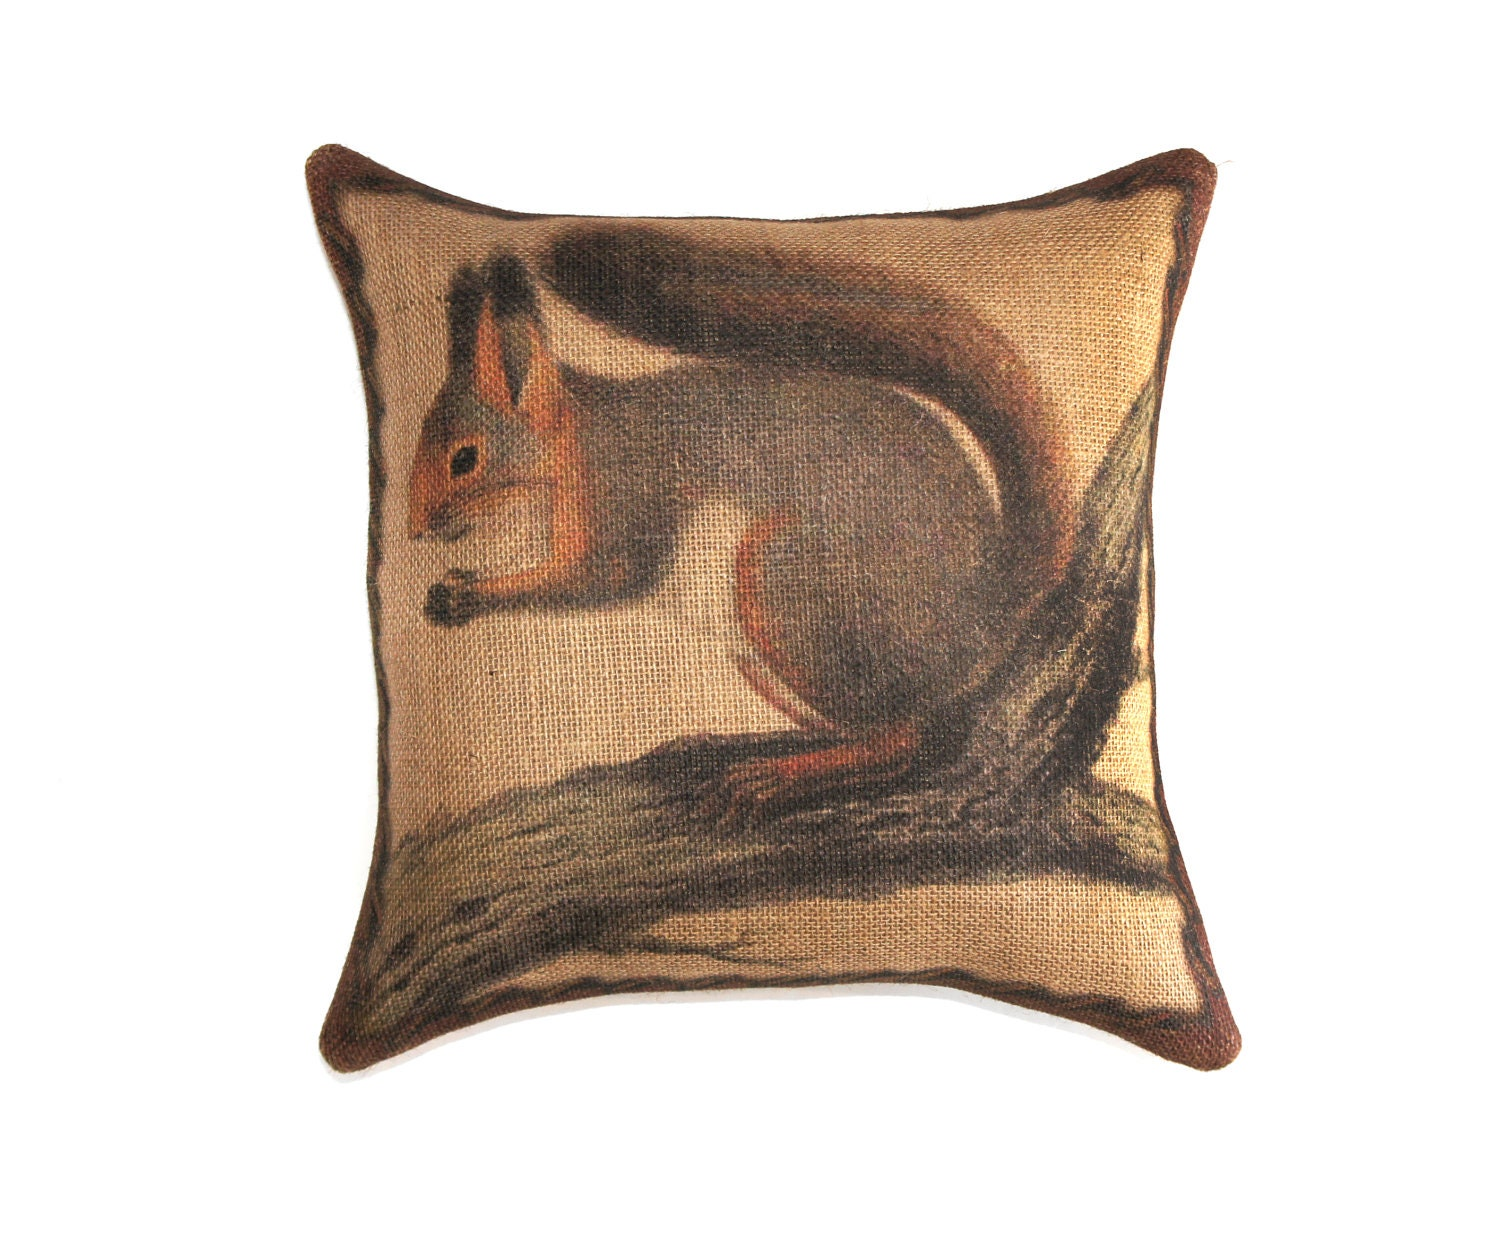 Decorative Throw Pillows Images : Squirrel Pillow Burlap Throw Pillow Decorative Rustic